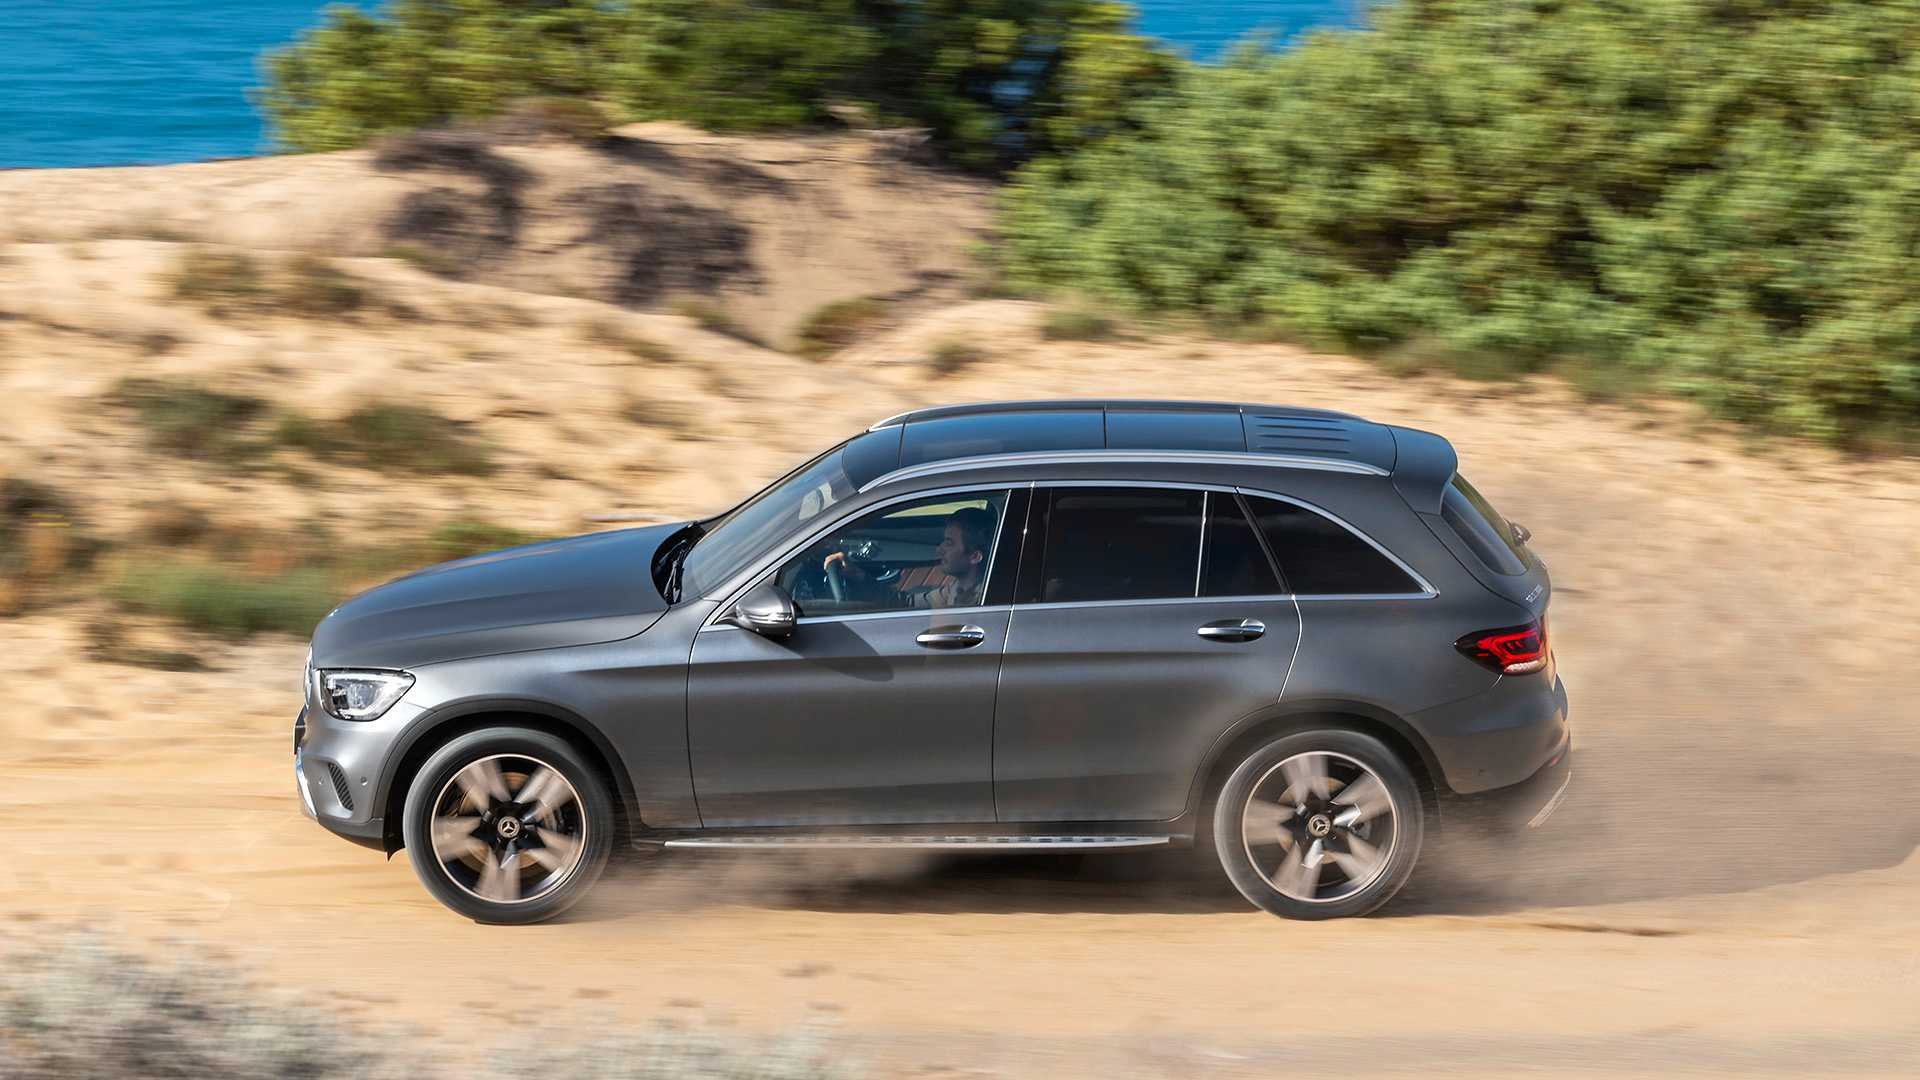 mercedes-benz-glc-2019 (8).jpg